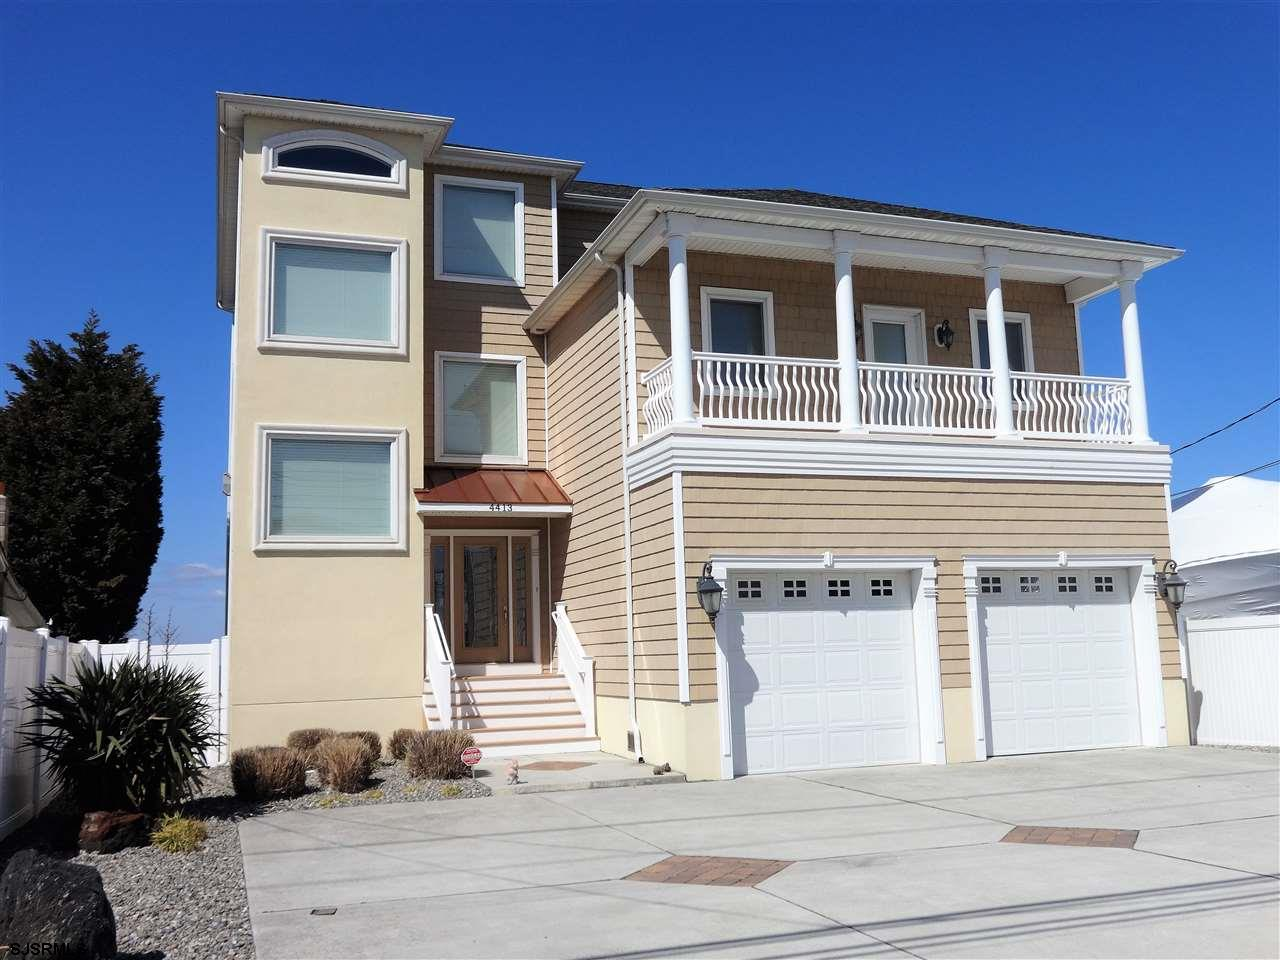 4413 Atlantic Brigantine Blvd., Brigantine, NJ 08203